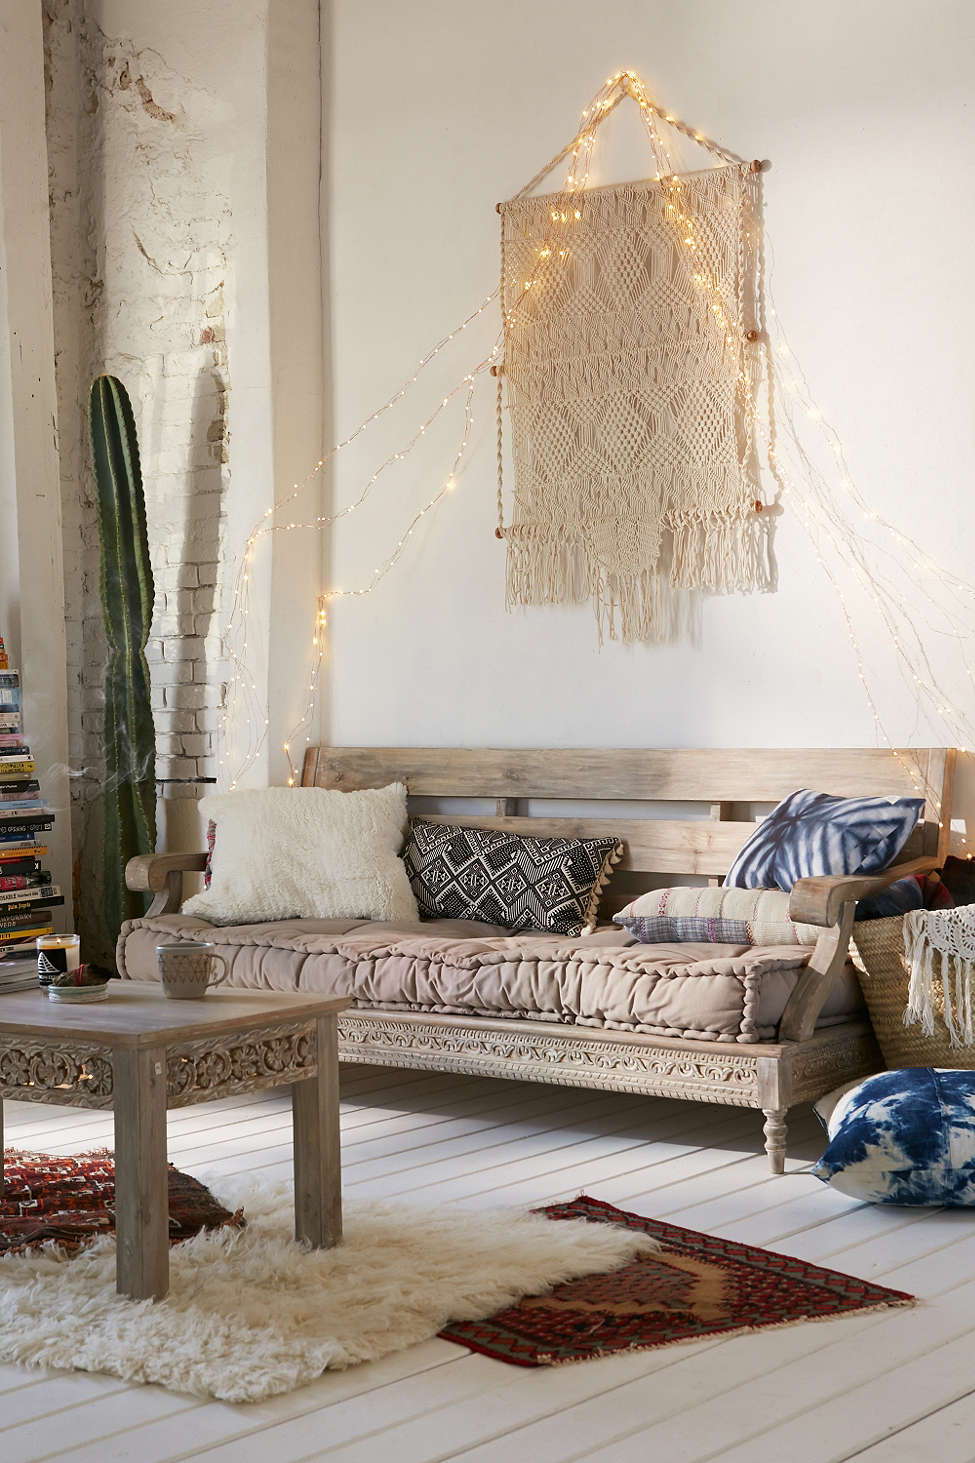 12 Daybed Ideas Were Daydreaming About Freshomecom